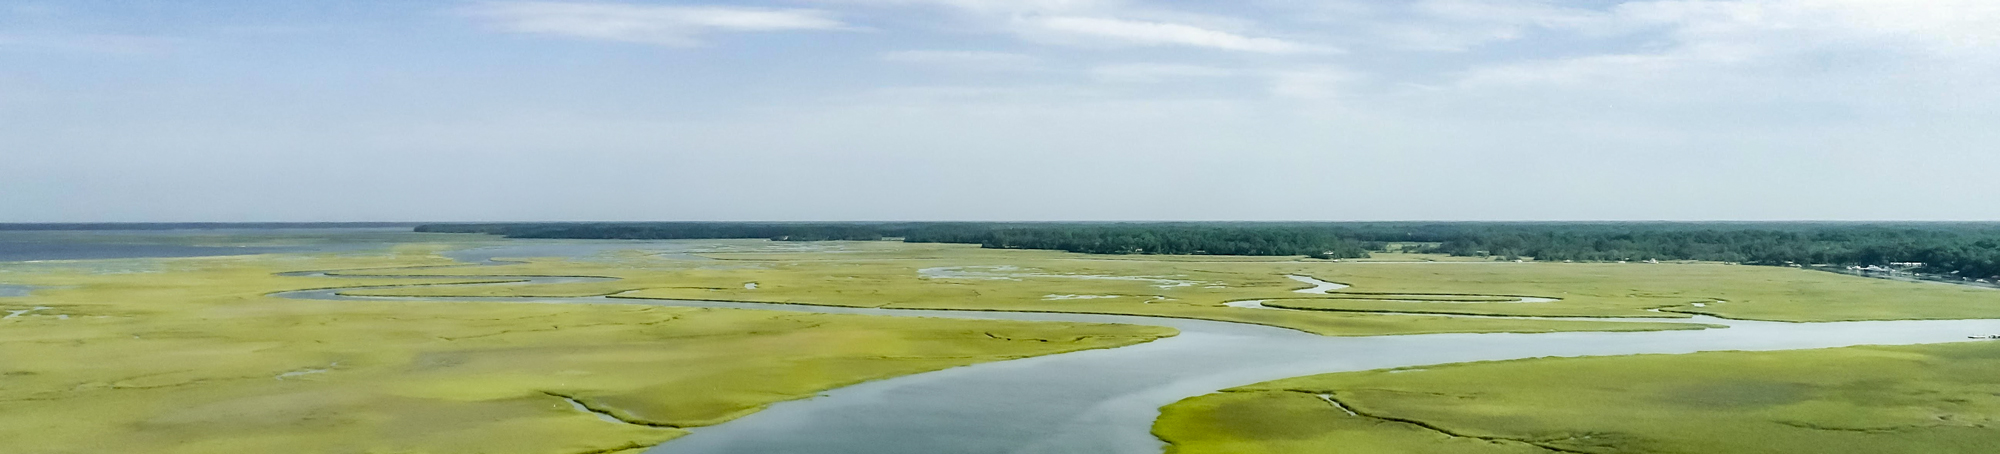 Aerial view of an estuary system.